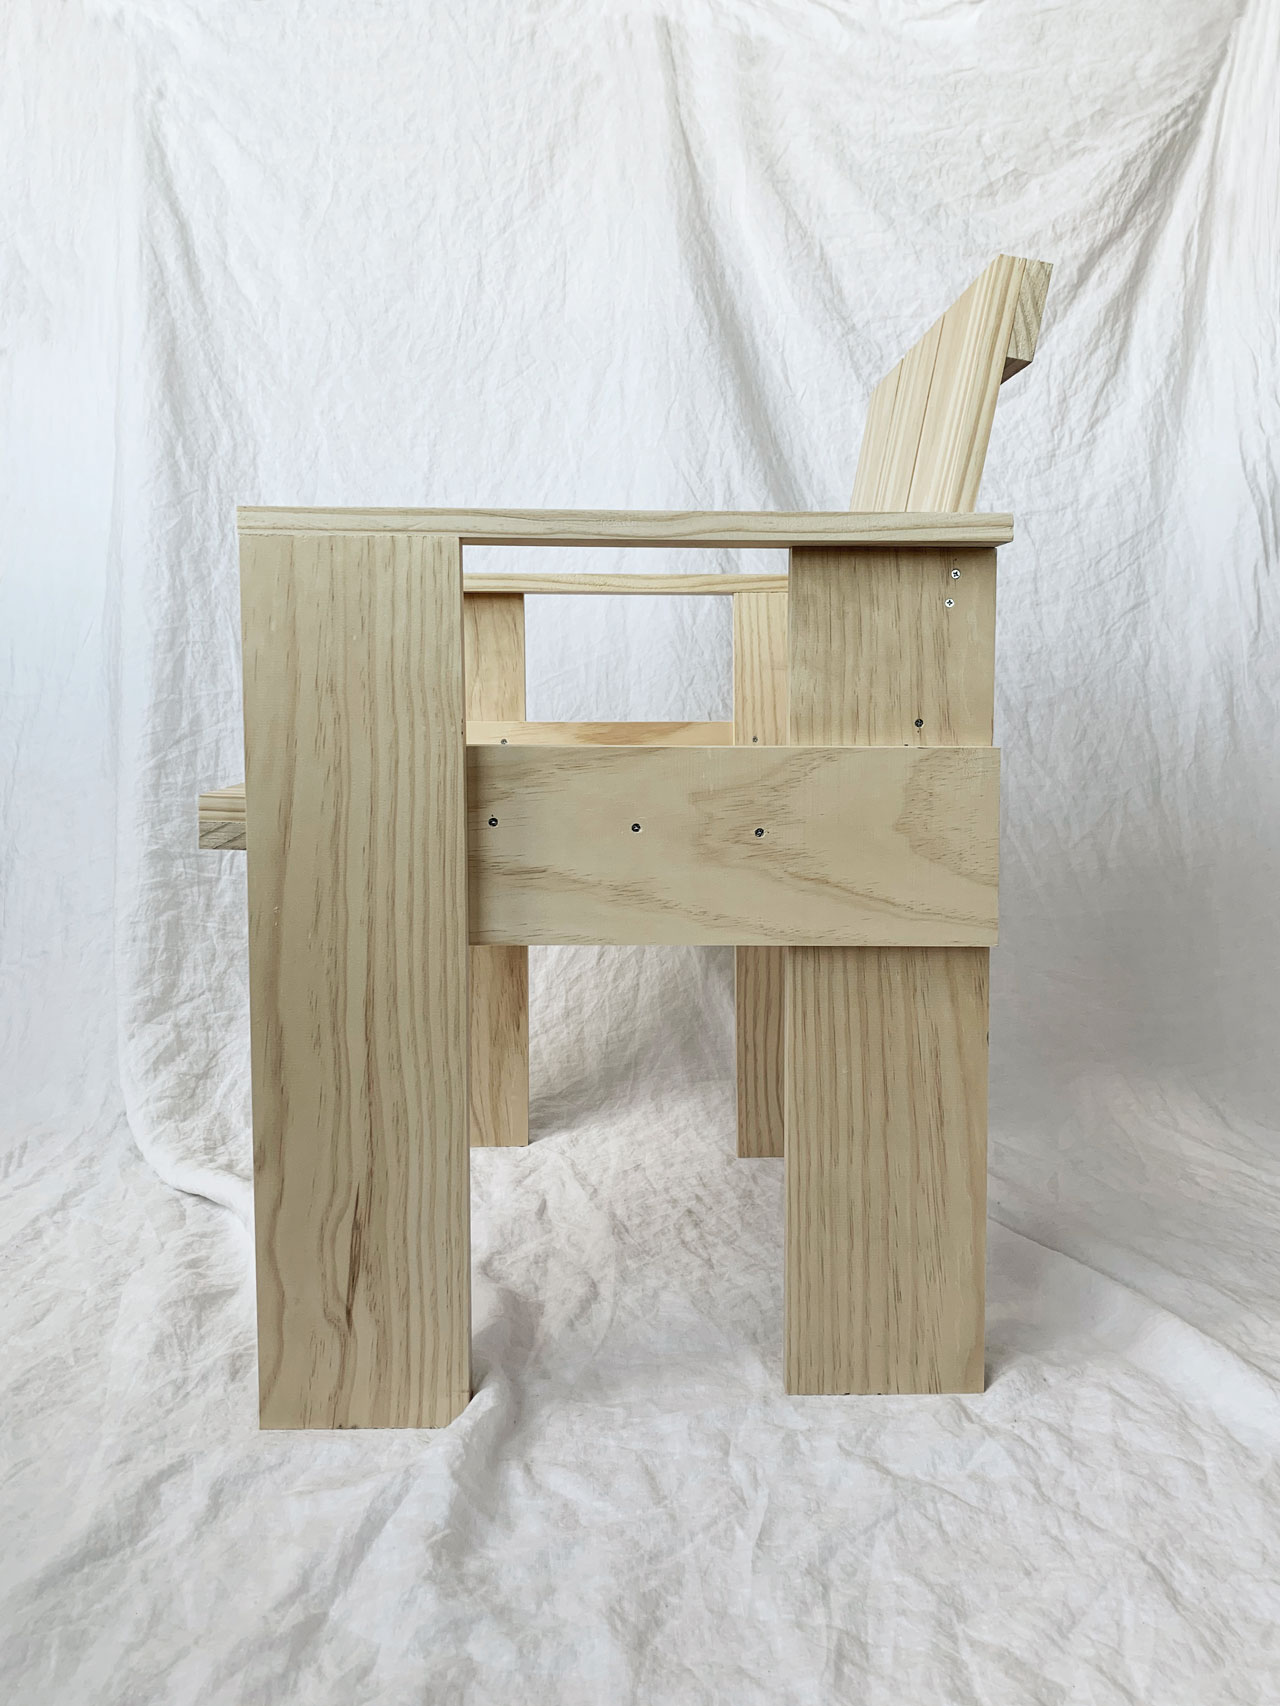 Crate Chair by Gerrit Rietveld